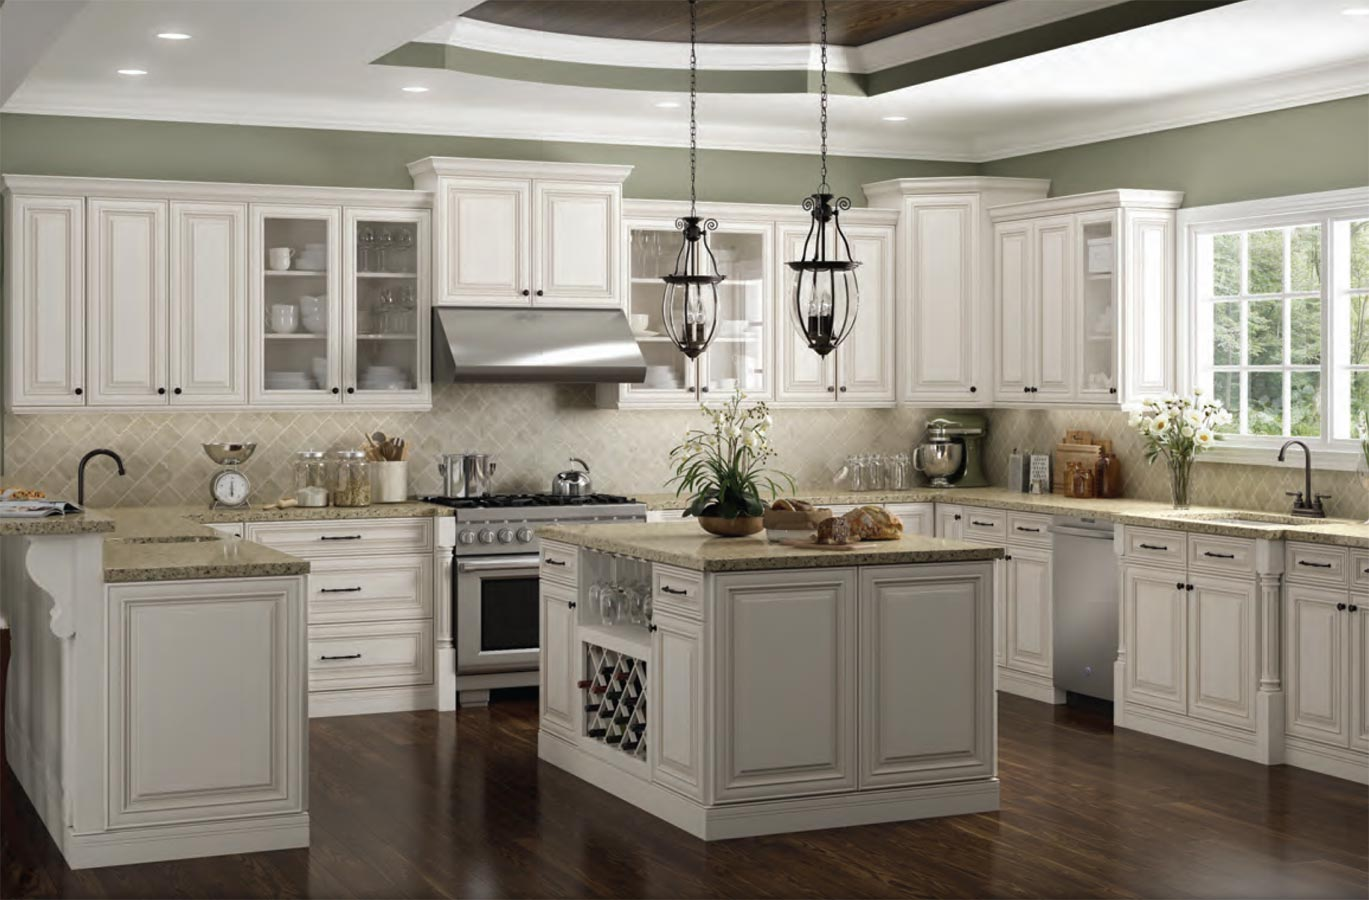 Painted Kitchen Cabinets Cabinet Ideas Houselogic Home Improvements Refference Maple White